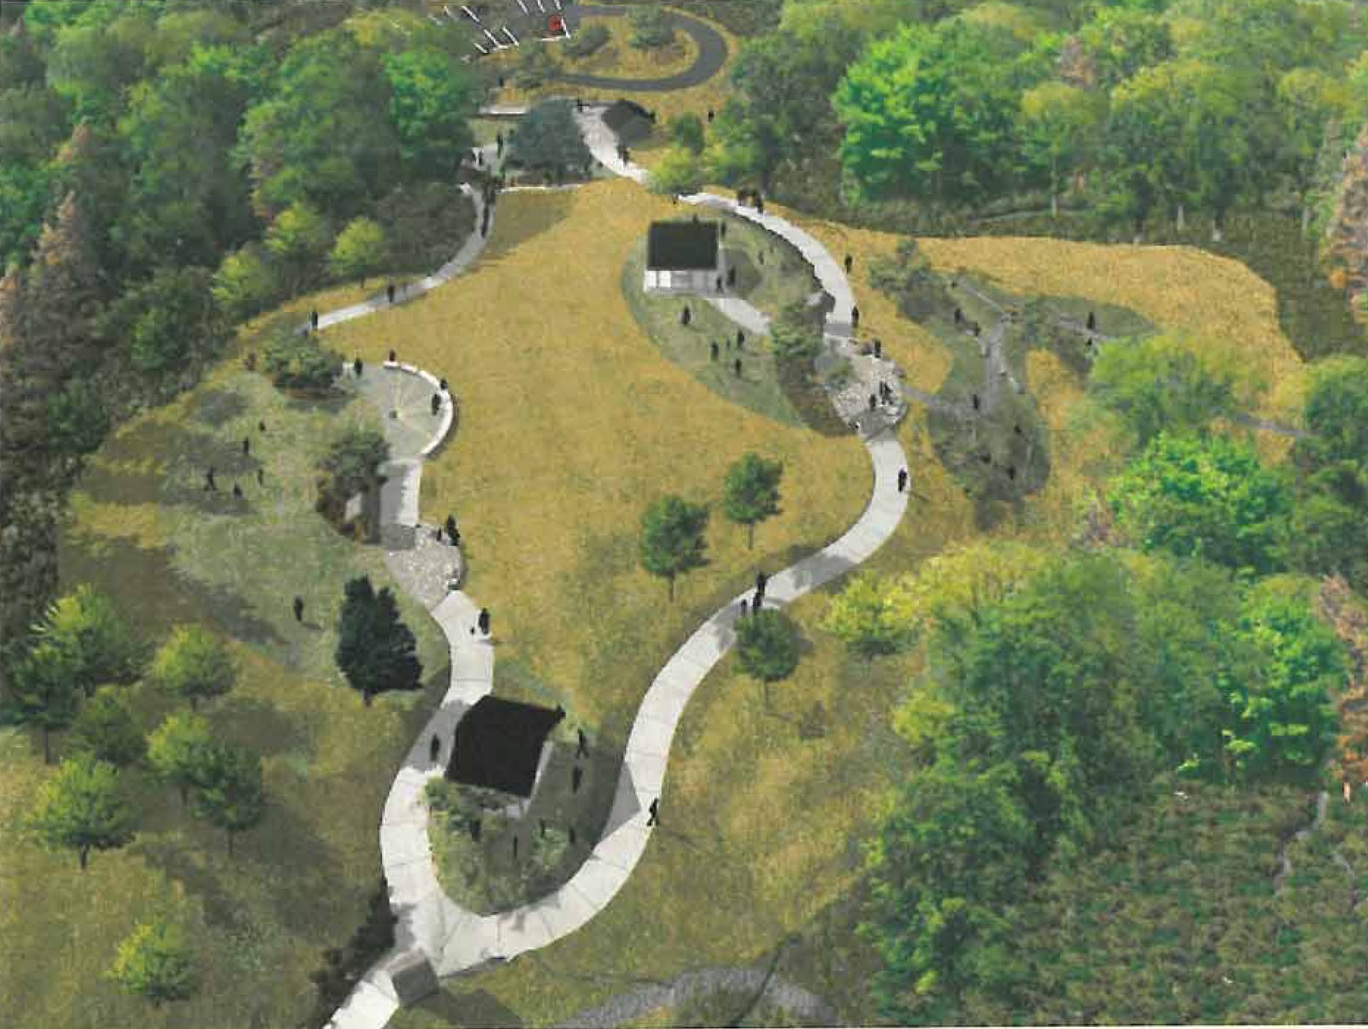 2006 quality visualization of pathway winding around a hill with picnic shelters and a meadow